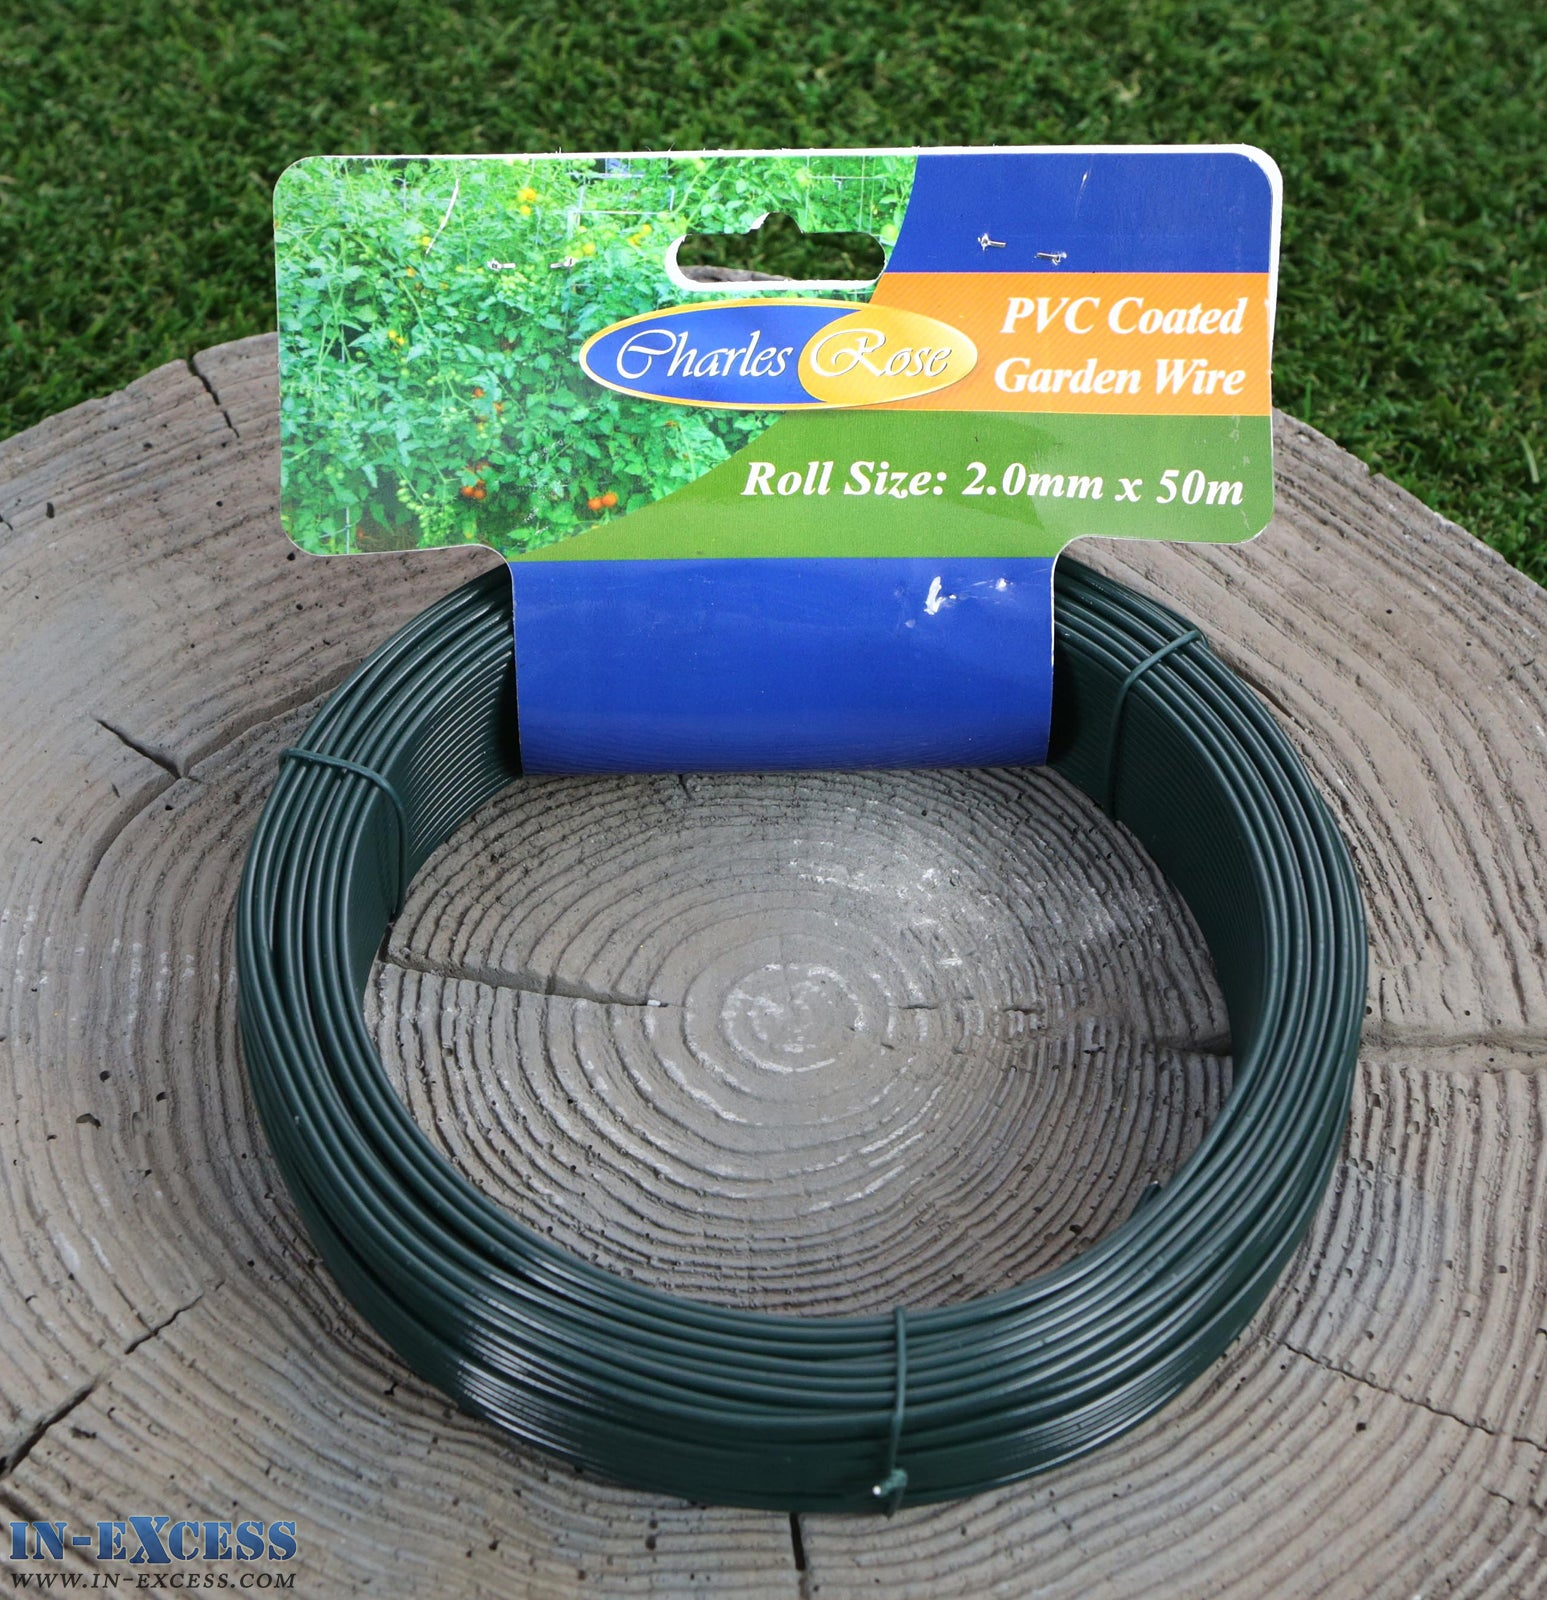 Charles Rose PVC Coated Garden Wire 2.0mm x 50 Metres - In-Excess Direct